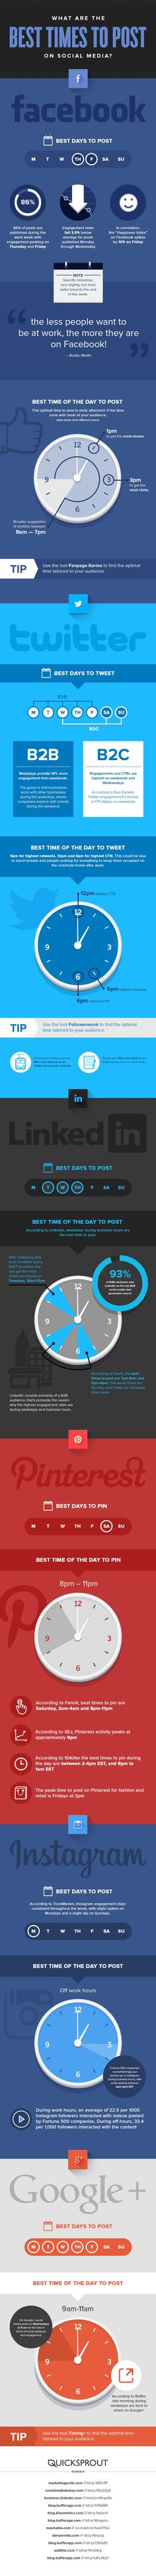 What are the Best Times to Post on #Facebook, #Twitter and #Instagram? [INFOGRAPHIC] [repinned by @ricardollera]